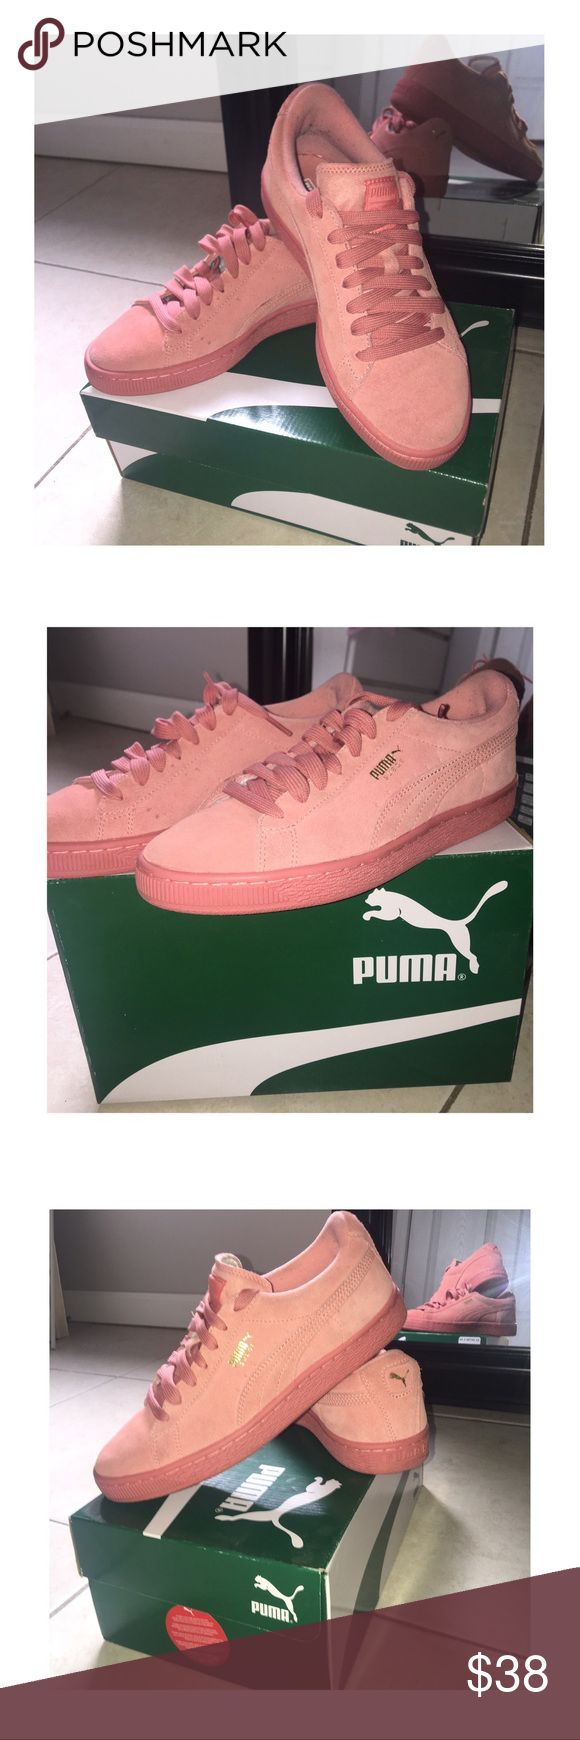 "🌸🌸DESERT FLOWER PUMAS!!!!! 🌸🌸SUPER CUTE ""DESERT FLOWER"" SUEDE PUMAS!!!!! SELLING BC I DONT WEAR THEM SO WHY KEEP THEM? WORN MAYBE 3-4 TIMES. THEY STILL EVEN SMELL LIKE NEW SHOES! GREAT FOR BACK TO SCHOOL ON A BUDGET OR TO TURN HEADS WITH ANY OUTFIT! 9/10 CONDITION . . . #shoes #pink #puma #comfy #cute #dope #style #fashion #stylish #backtoschool #school #budget #budgetfriendly #women #outwear #accessories #different #sneakers #trainers #feet #socks Puma Shoes Sneakers"